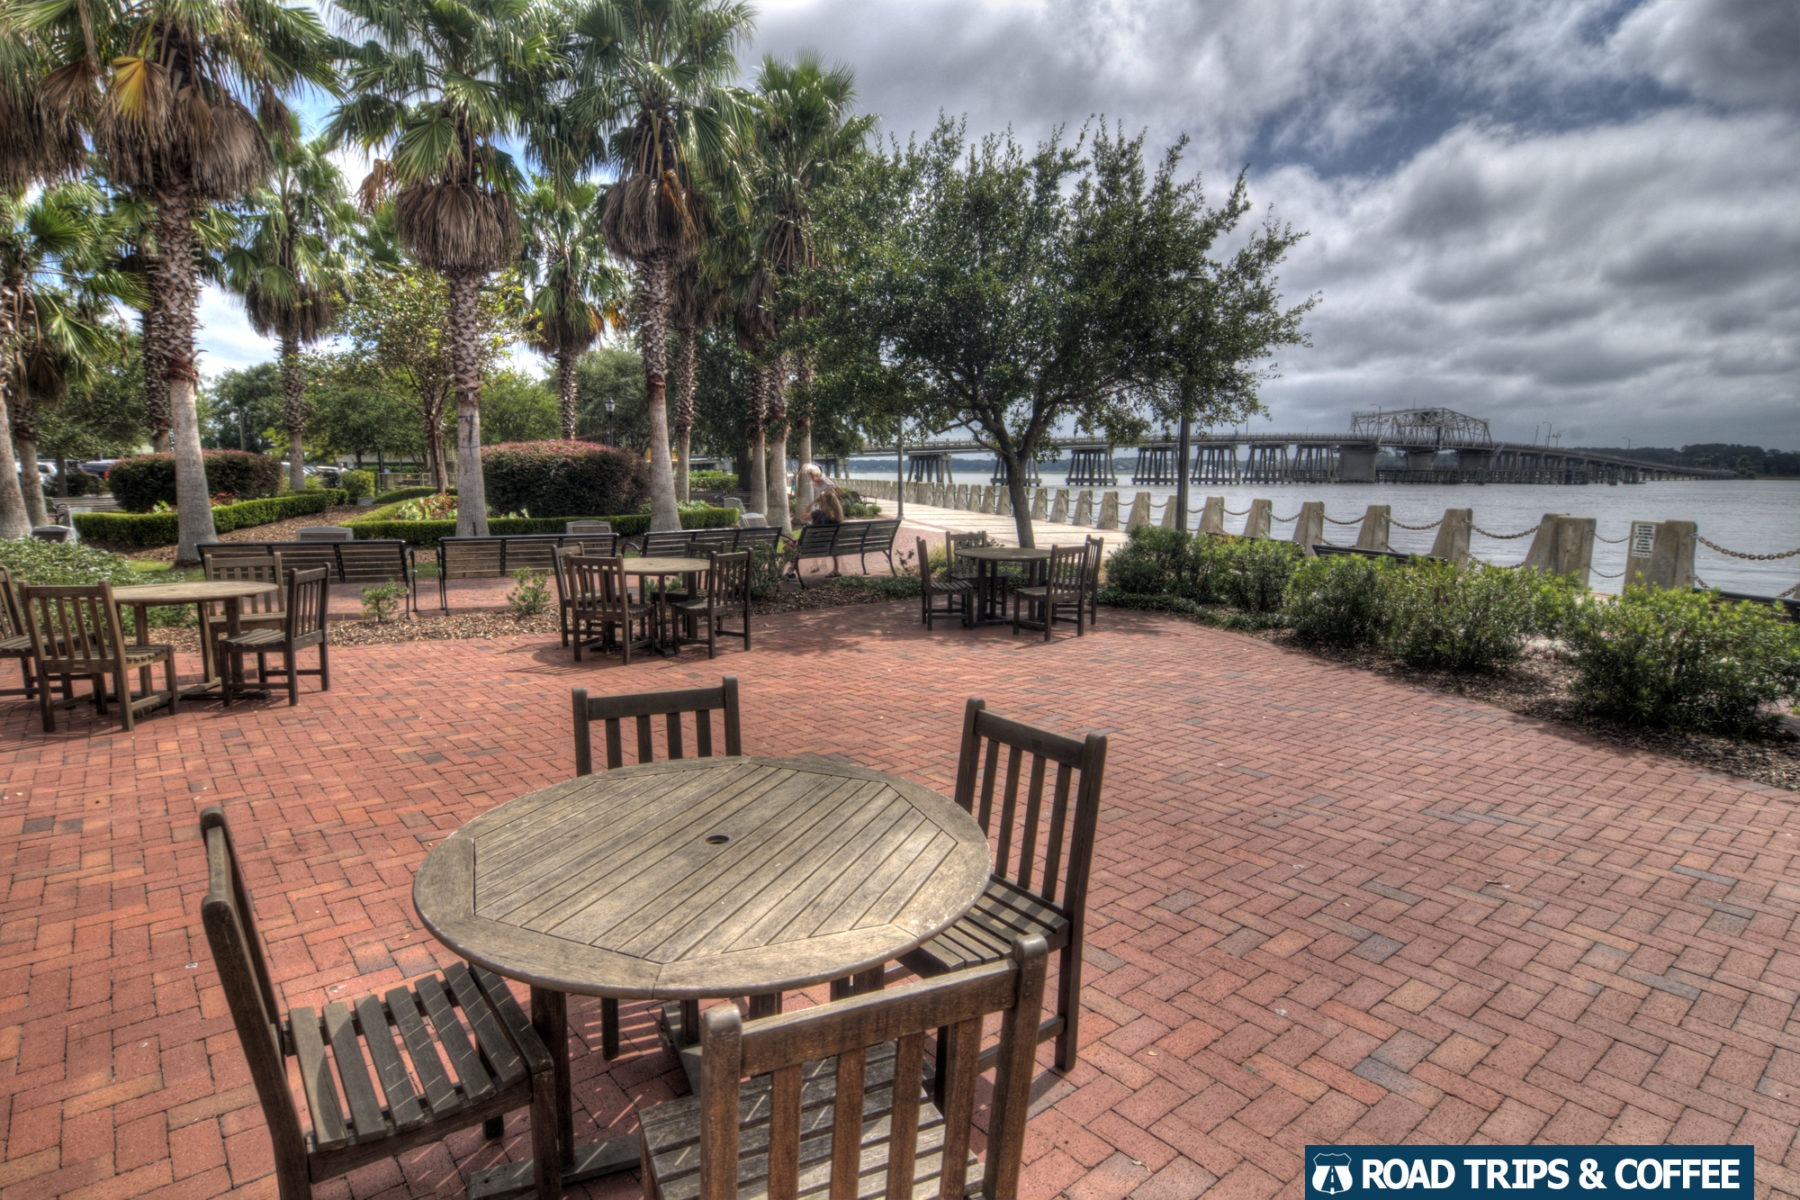 Several sets of wooden tables and chairs on a brick patio at Henry C. Chambers Waterfront Park in Beaufort, South Carolina